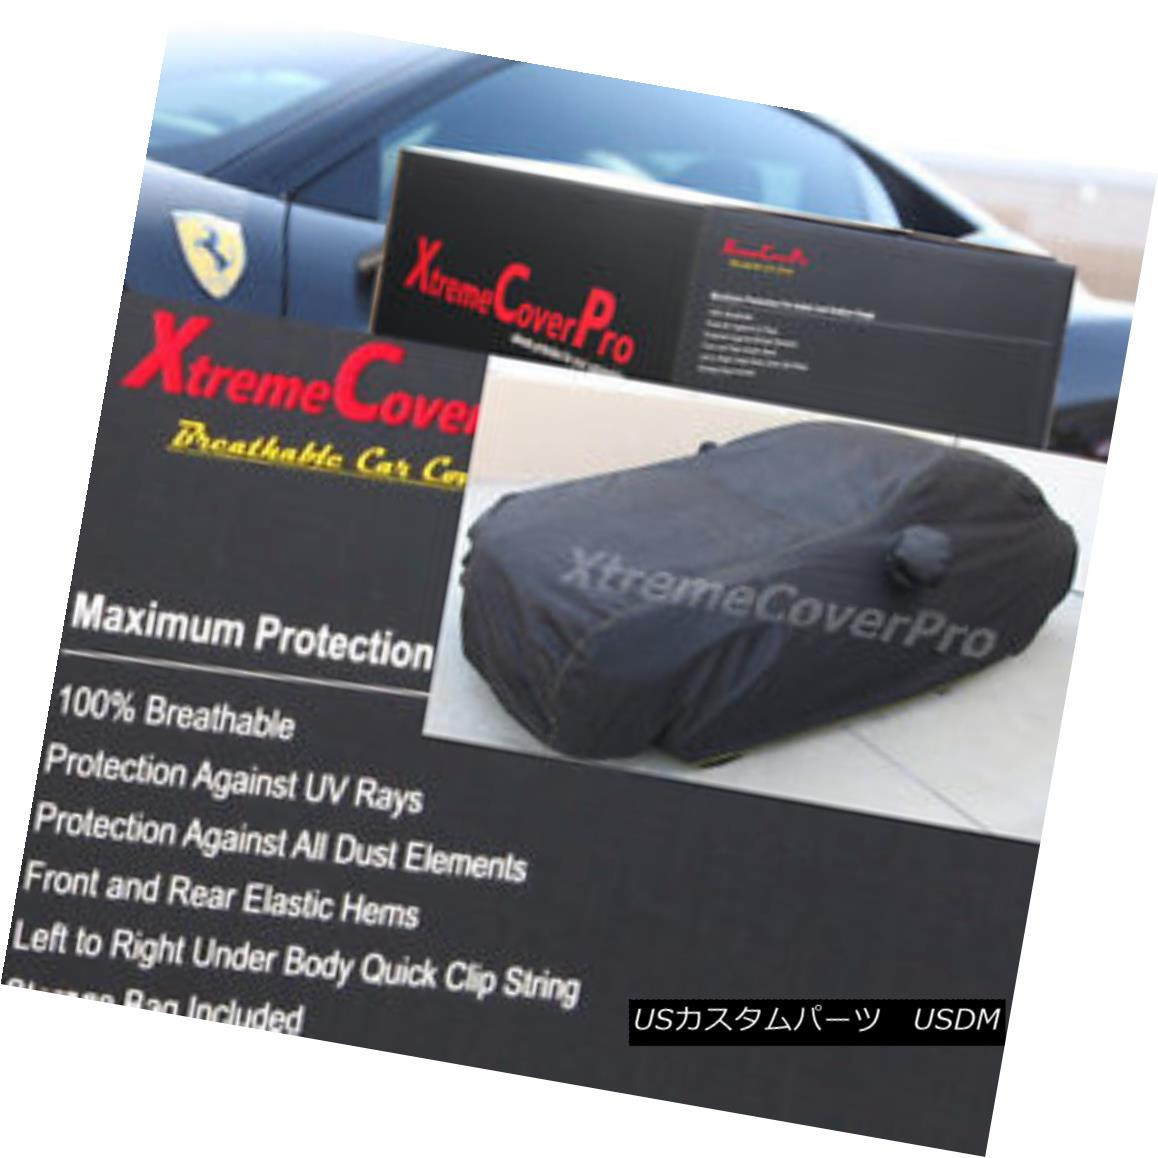 カーカバー 2015 CADILLAC ELR COUPE Breathable Car Cover w/Mirror Pockets - Black 2015 CADILLAC ELR COUPE通気性車カバー、ミラーポケット付き - ブラック